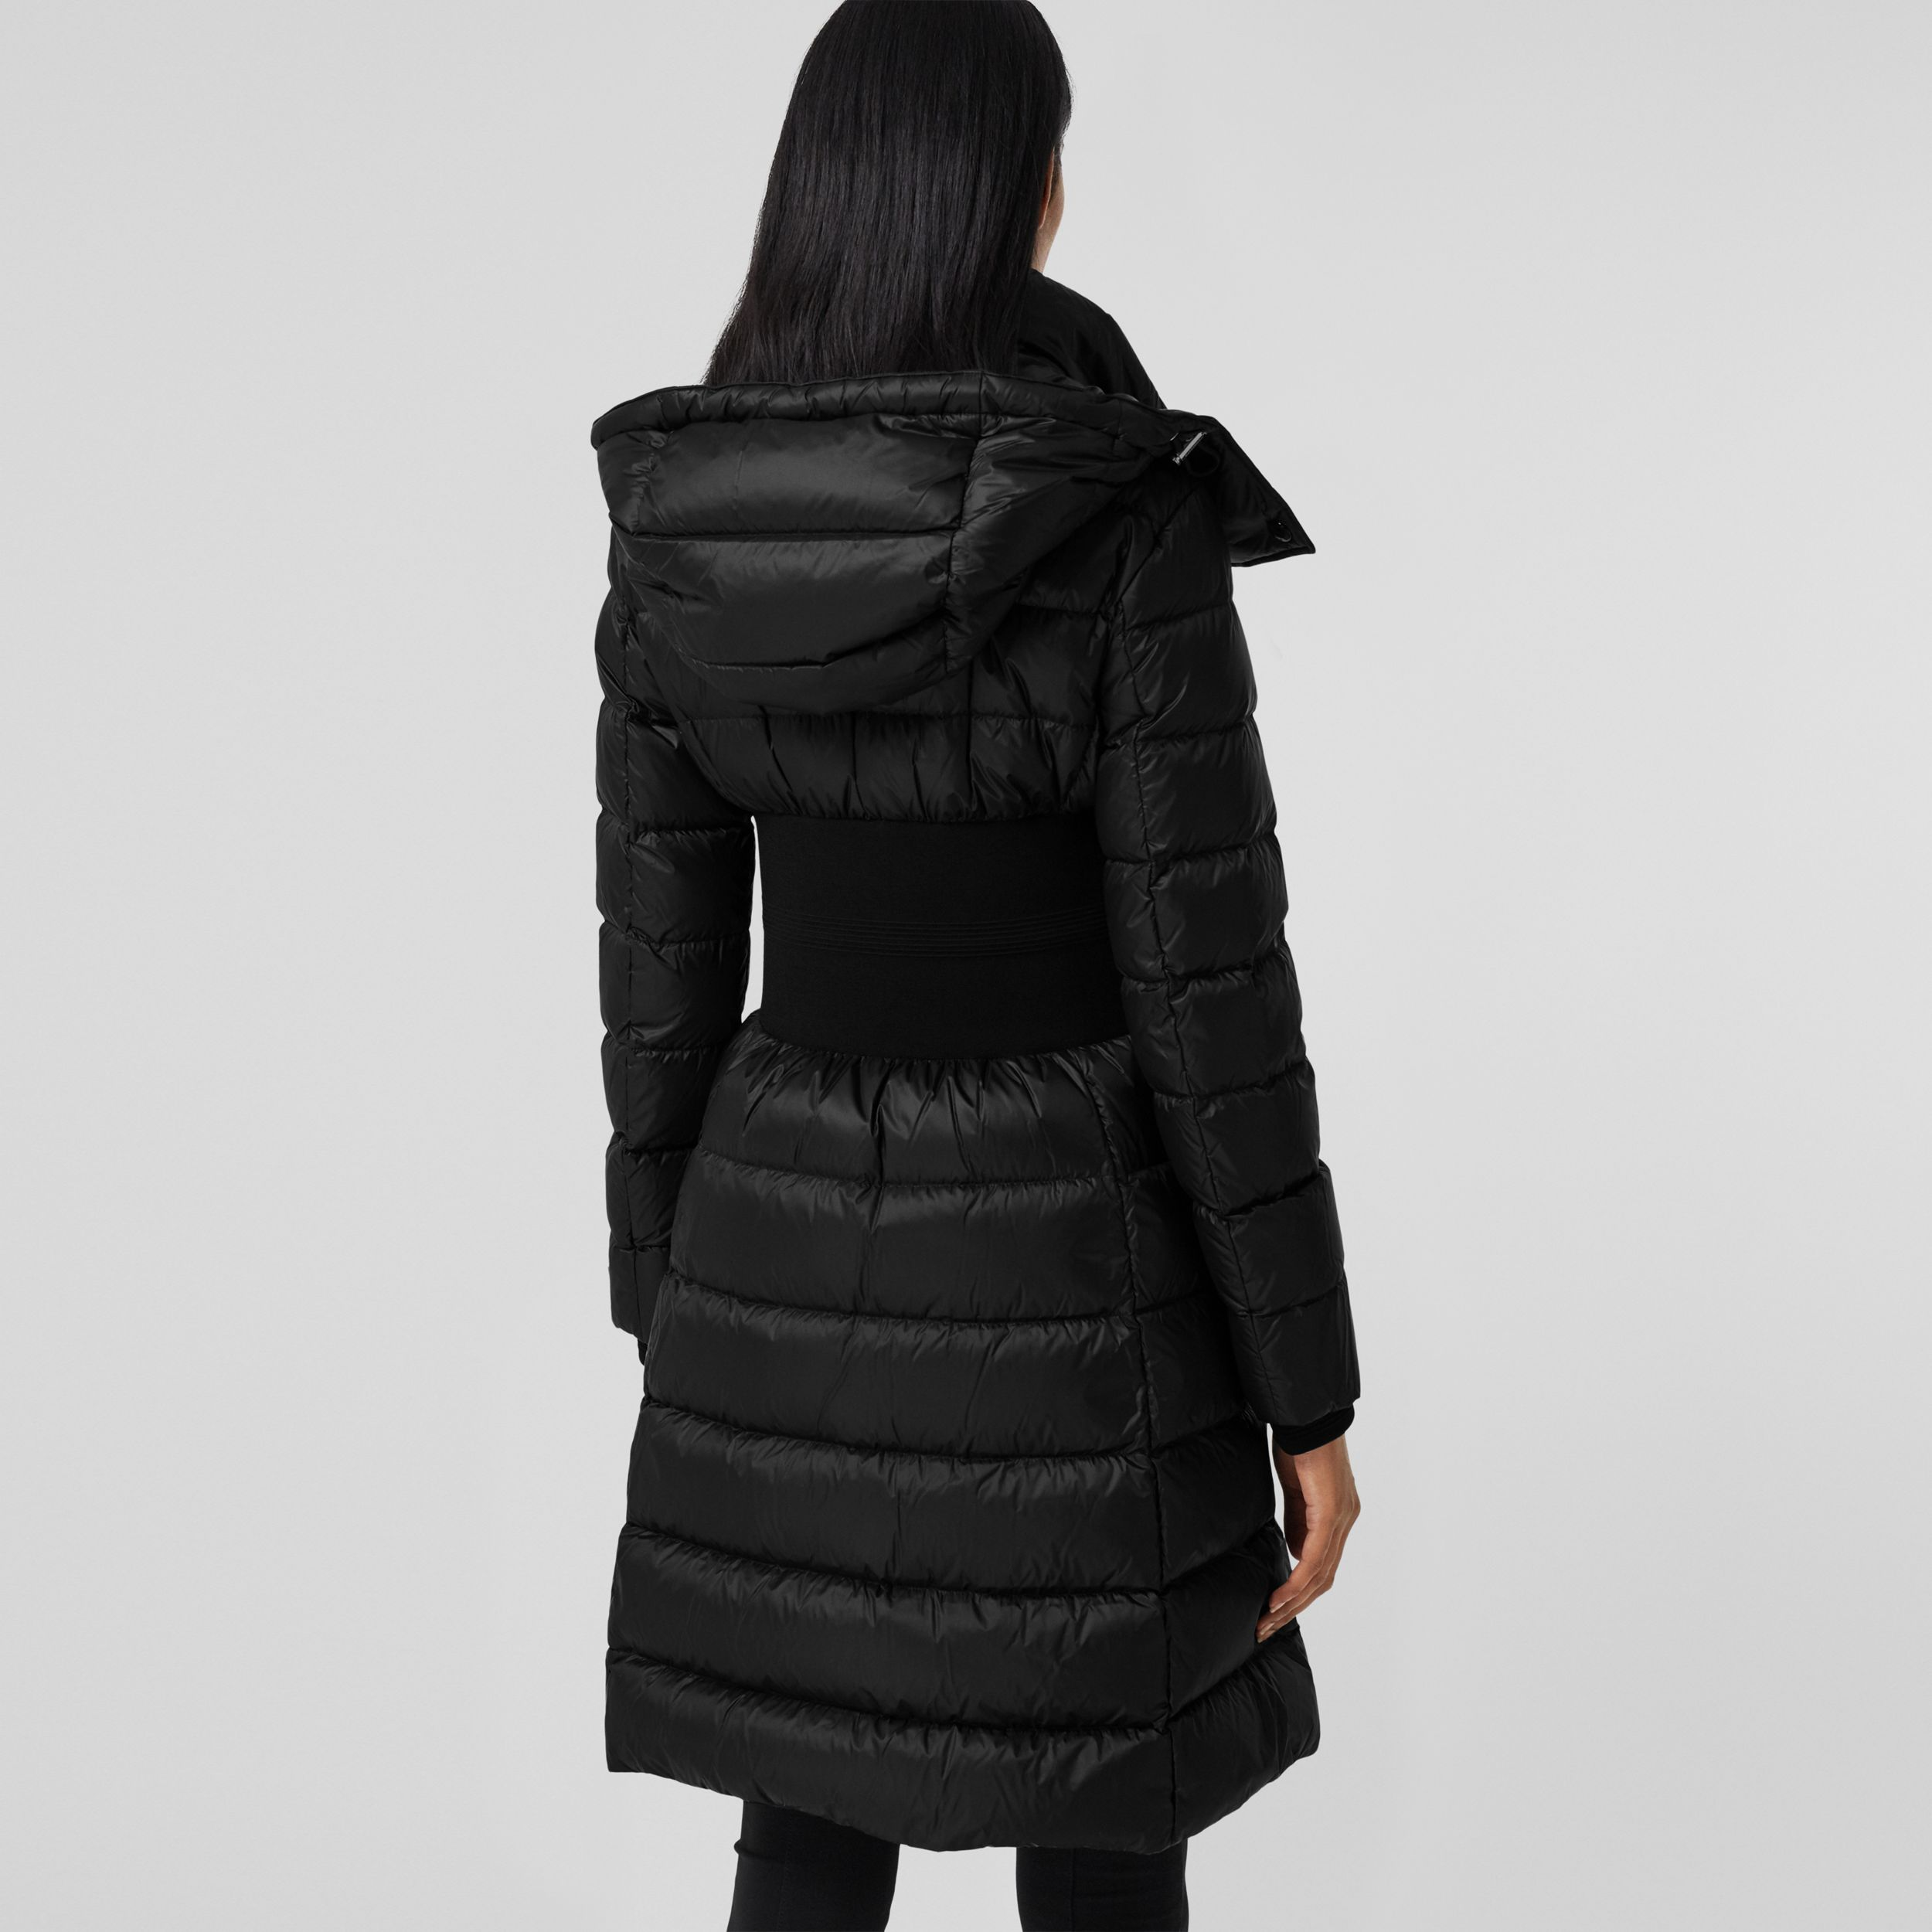 Detachable Hood Rib Knit Panel ECONYL® Puffer Coat in Black - Women | Burberry - 3